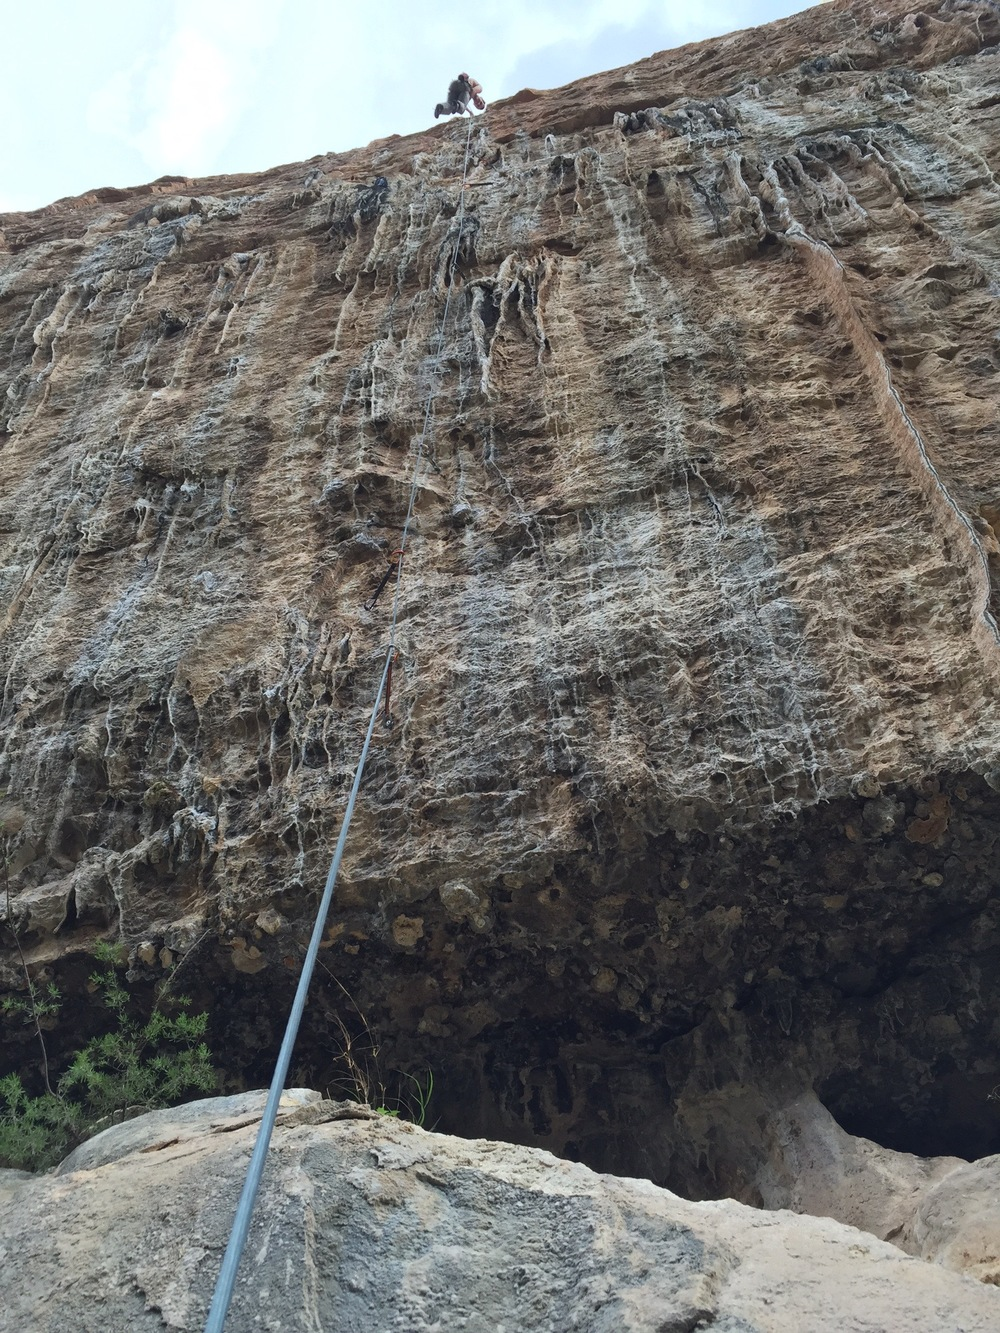 Fun 8a+ - hard boulder problem into sustained tufa into technical crimp top-out. Something to come back for.